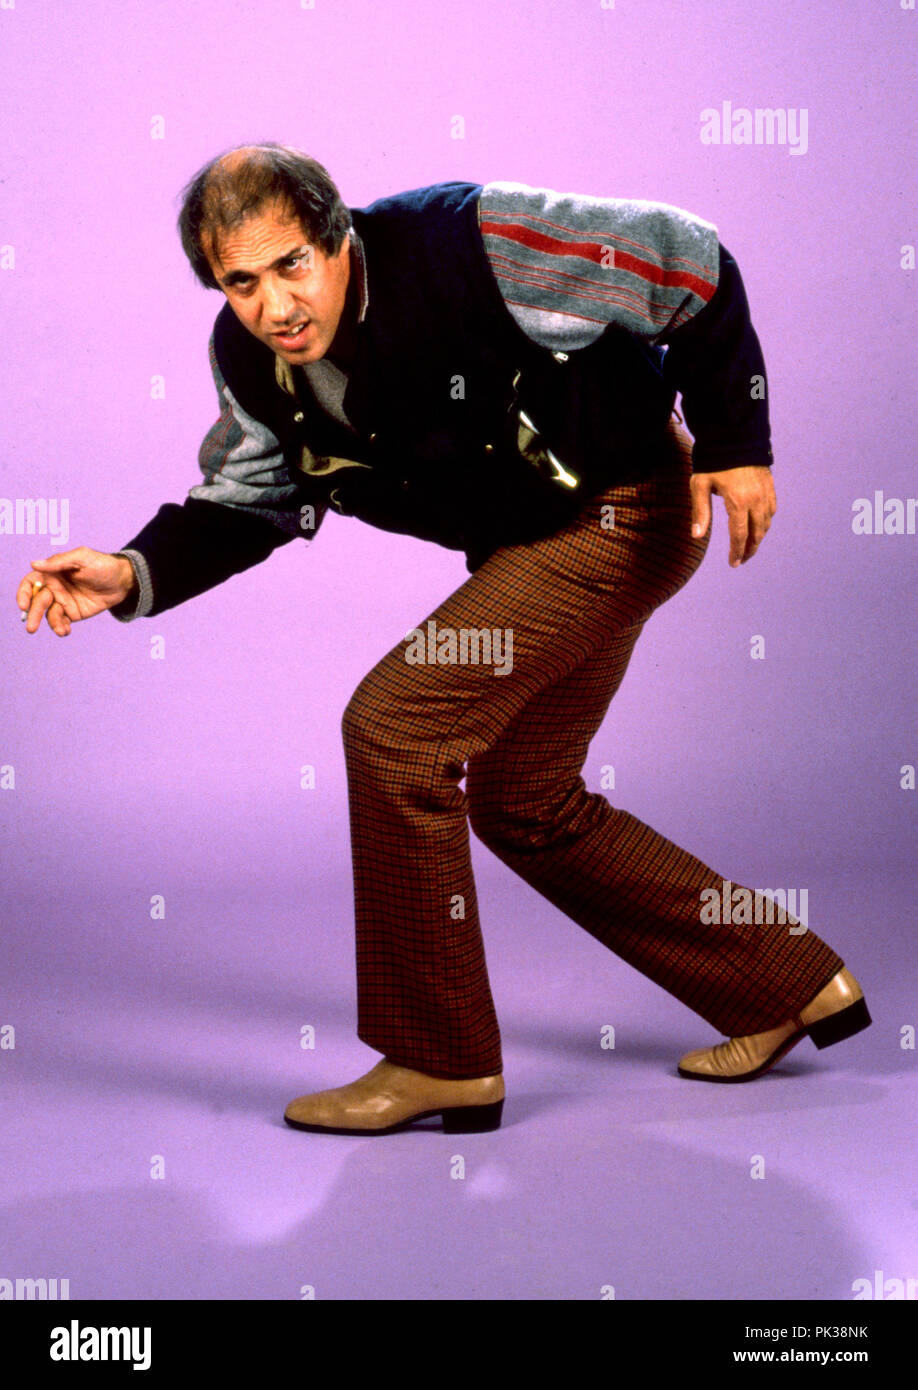 Celentano Stock Photos Celentano Stock Images Page 3 Alamy